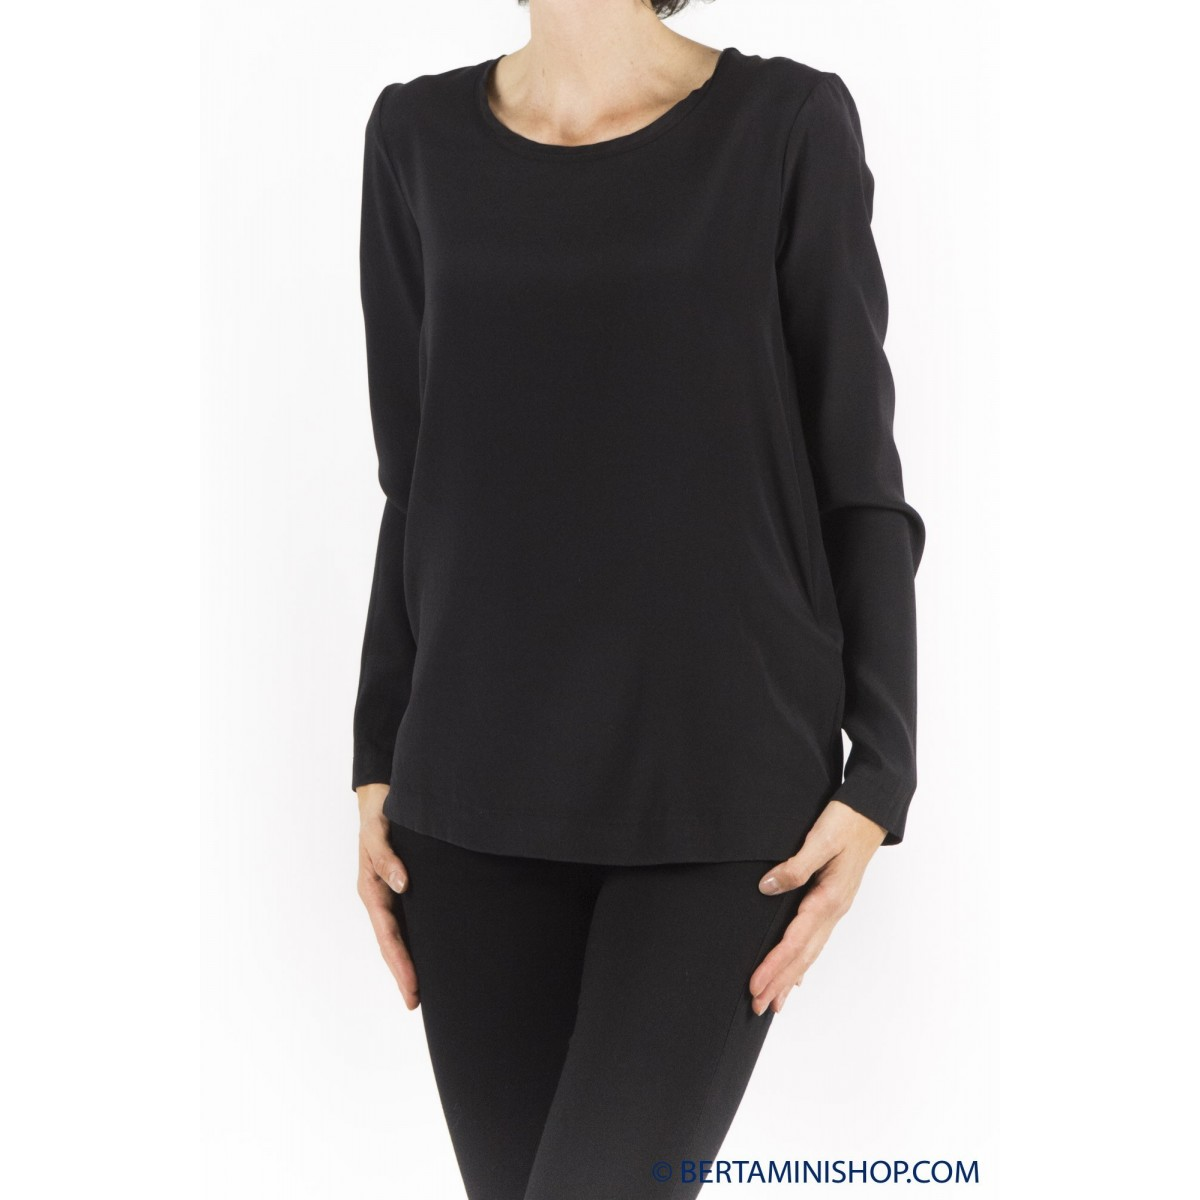 T Shirt Long-Sleeves Jucca Woman - 2008 003 - nero